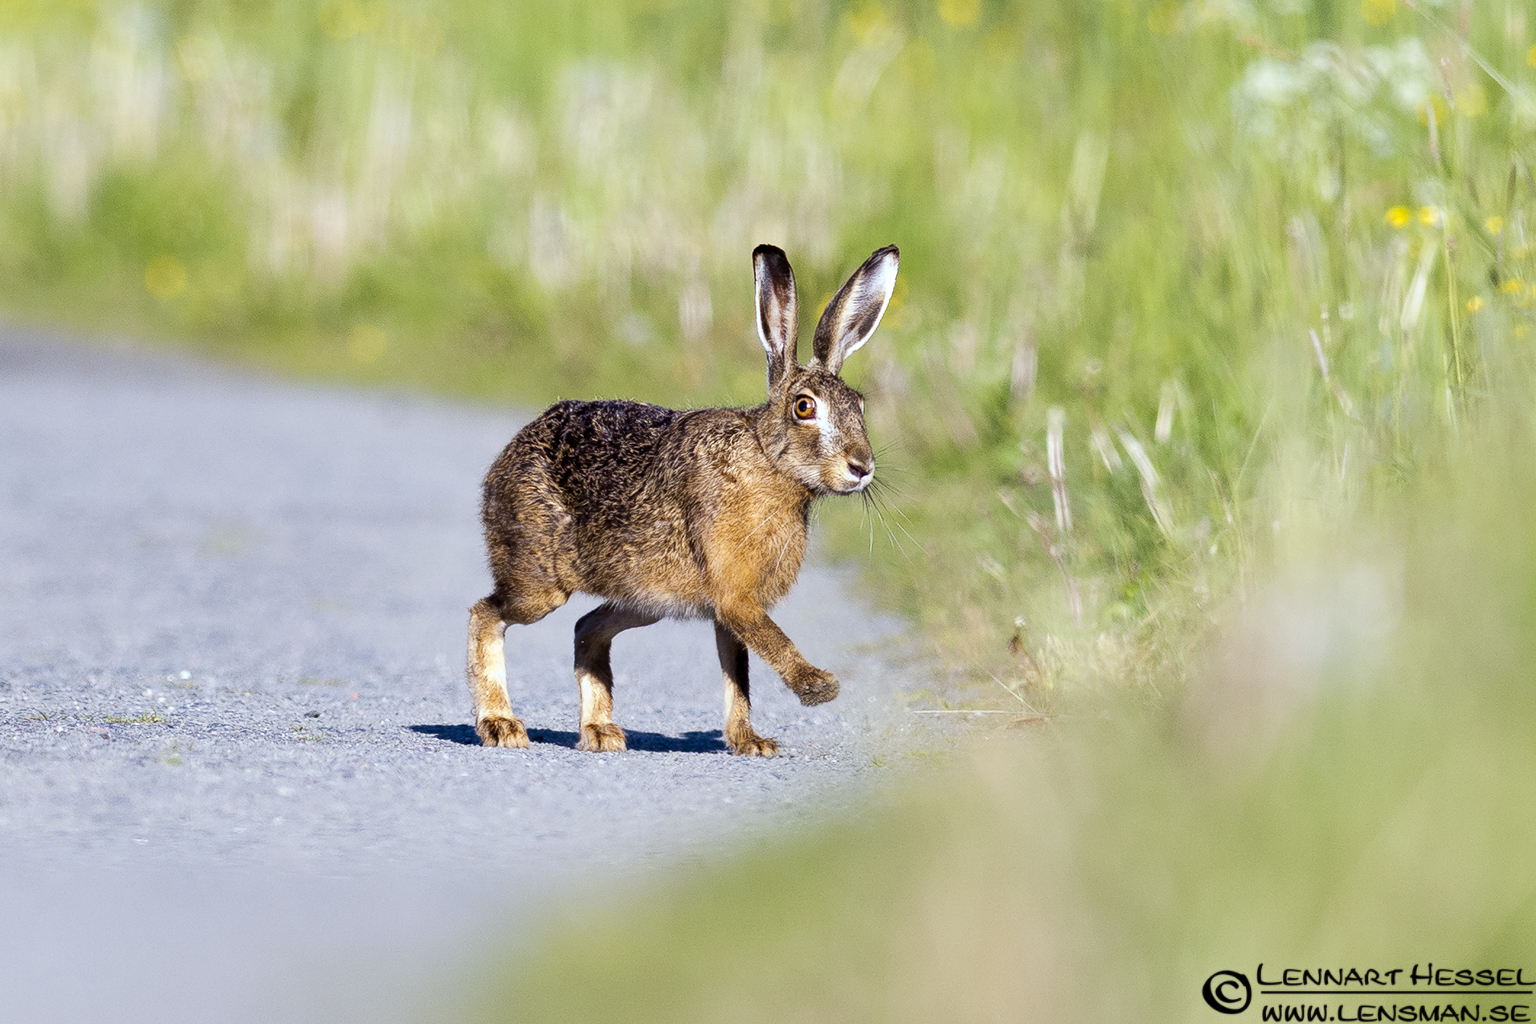 European Hare at Säveån, Gothenburg